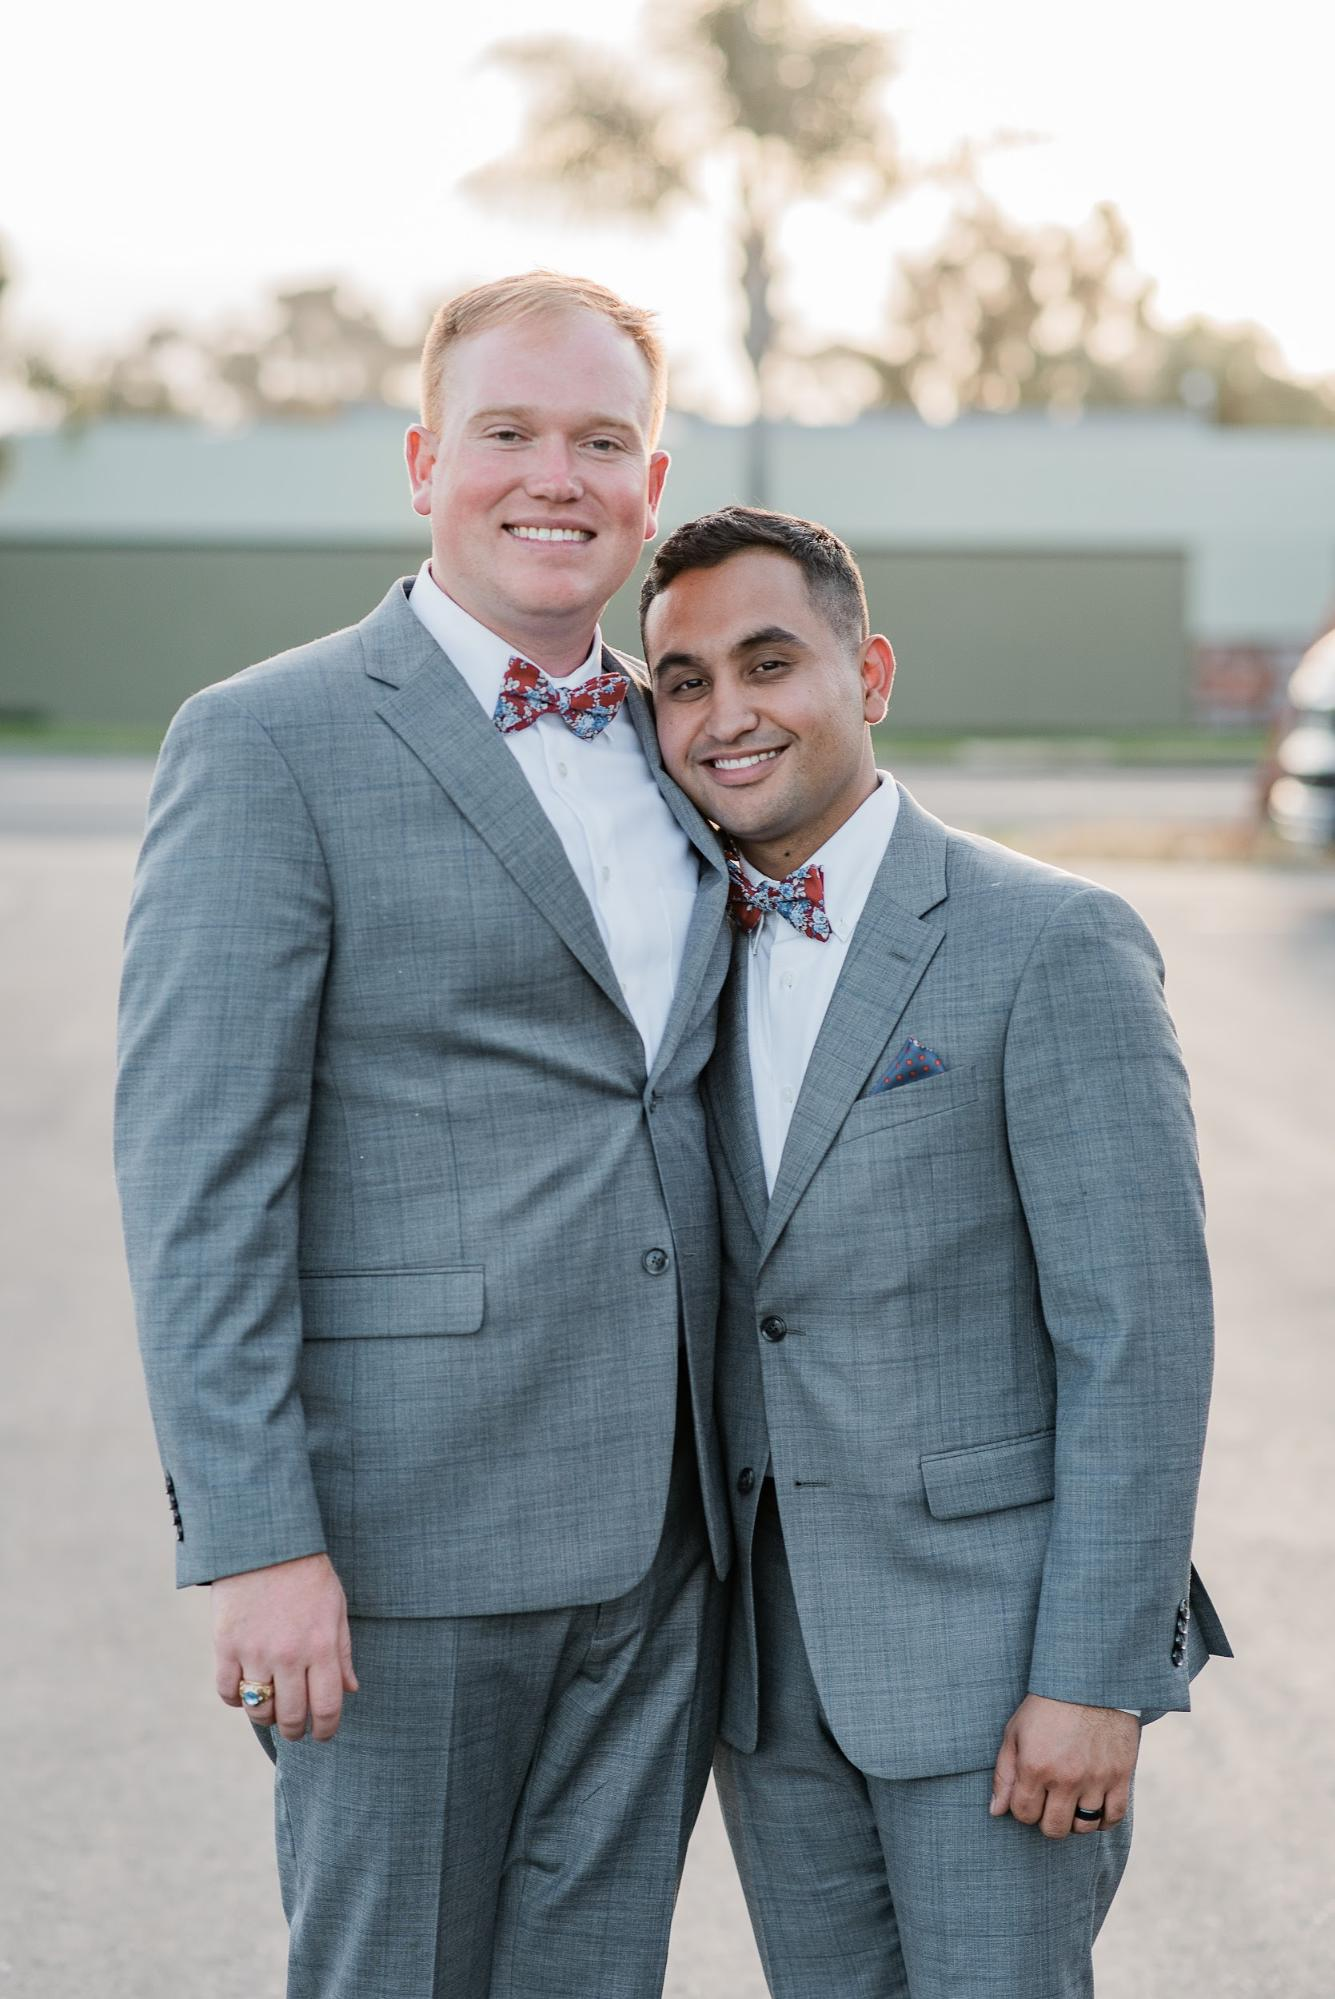 Groom and Groom Wedding.jpg